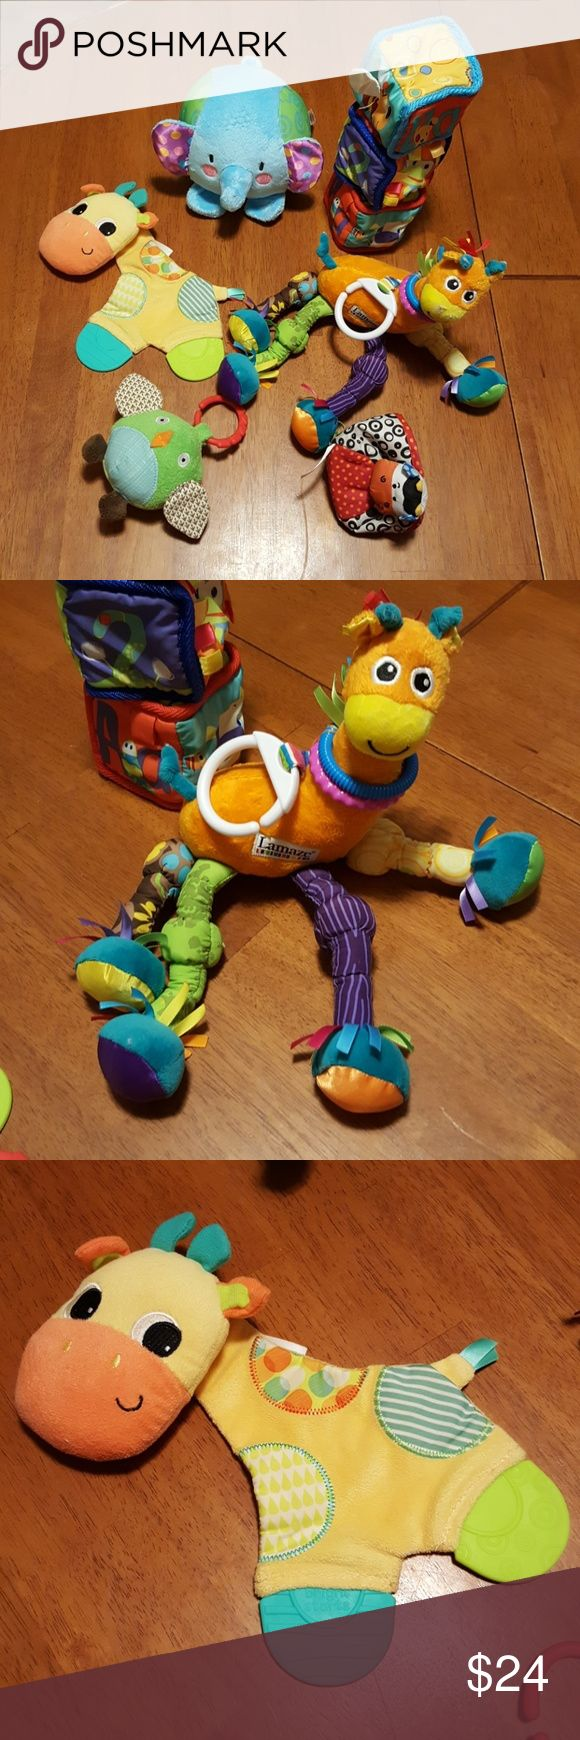 Baby Toys! Great gift items! Great baby toy lot! Many types of toys that crinkle, jingle and hang. Lamaze giraffe is a great fun toy for any baby. They are all in great condition! Ask any questions and make a fair offer ;) Lamaze Other